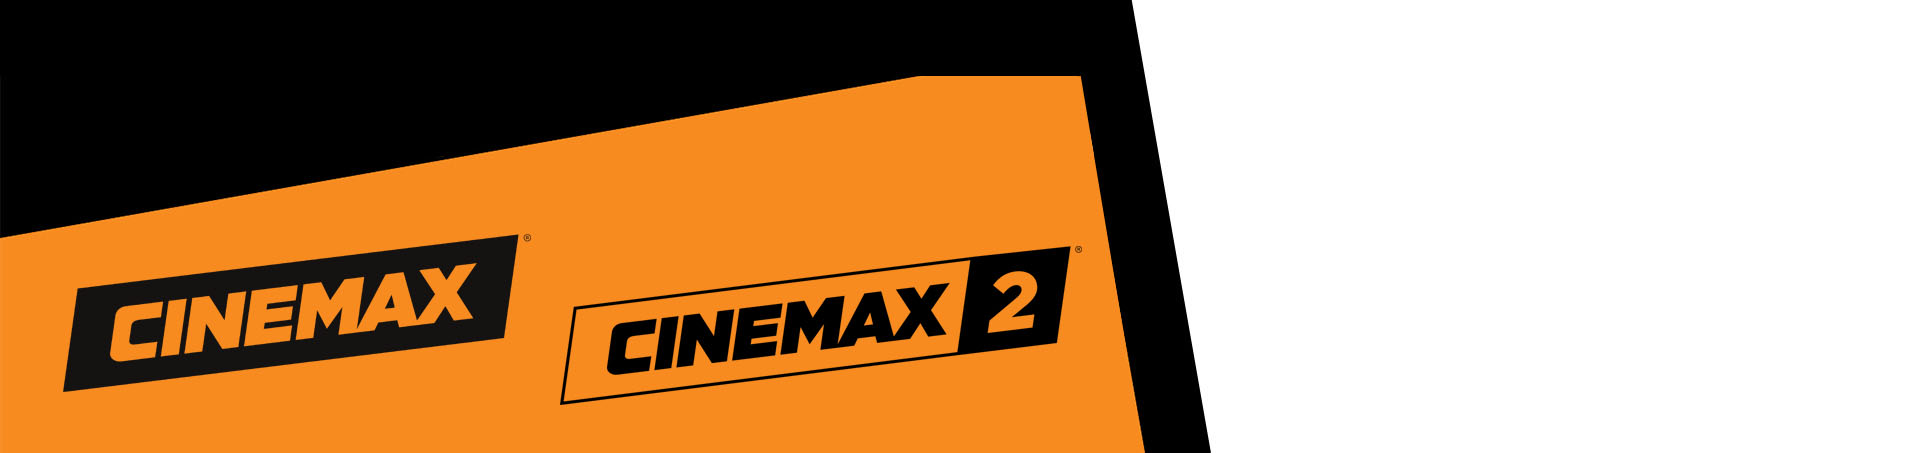 cinemax3